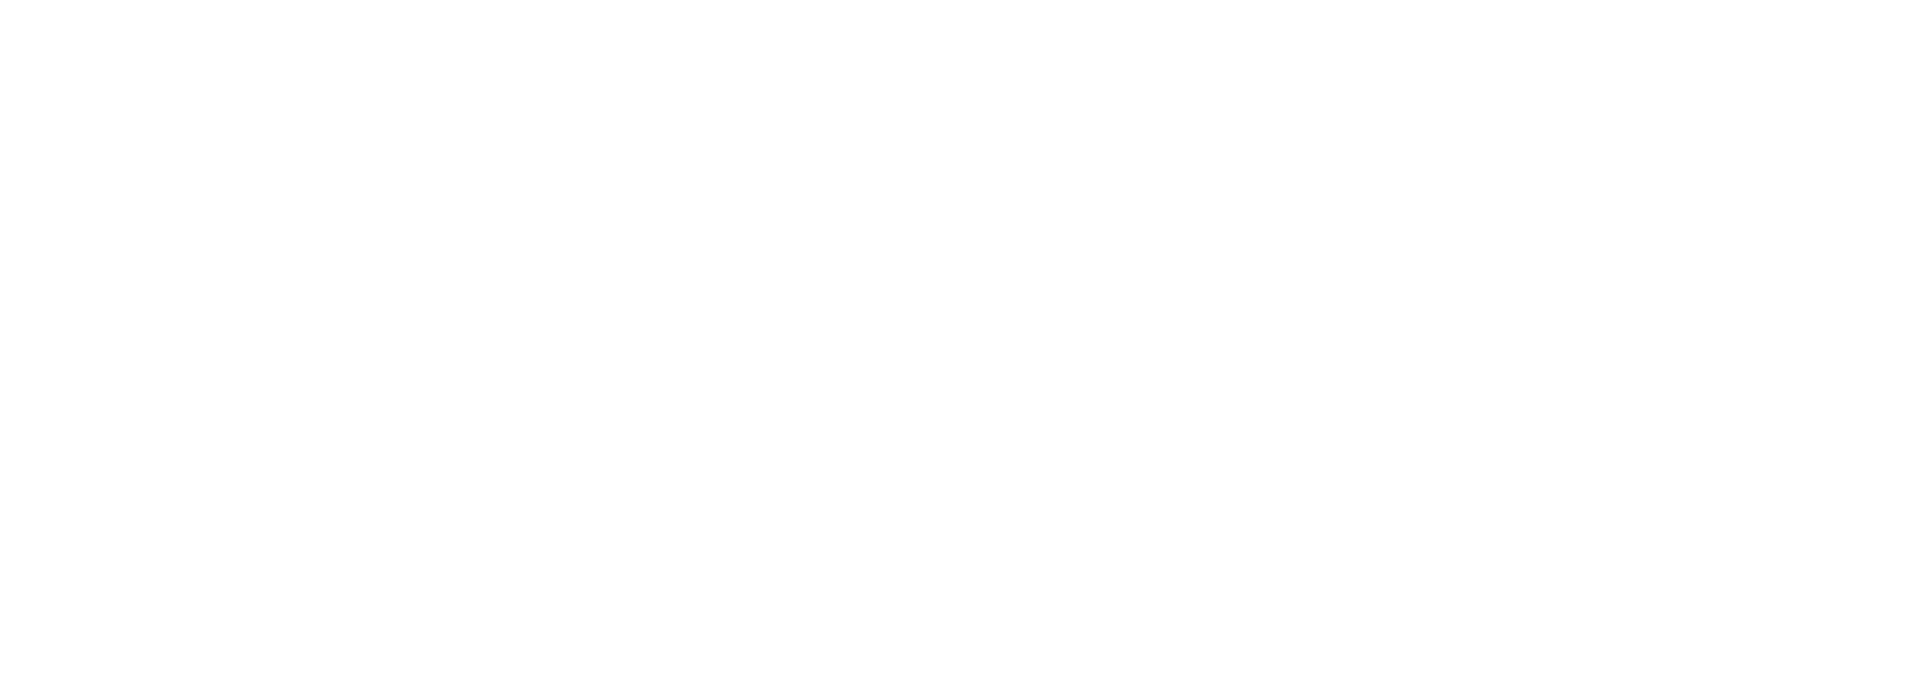 Association of Anaesthetists Case Study